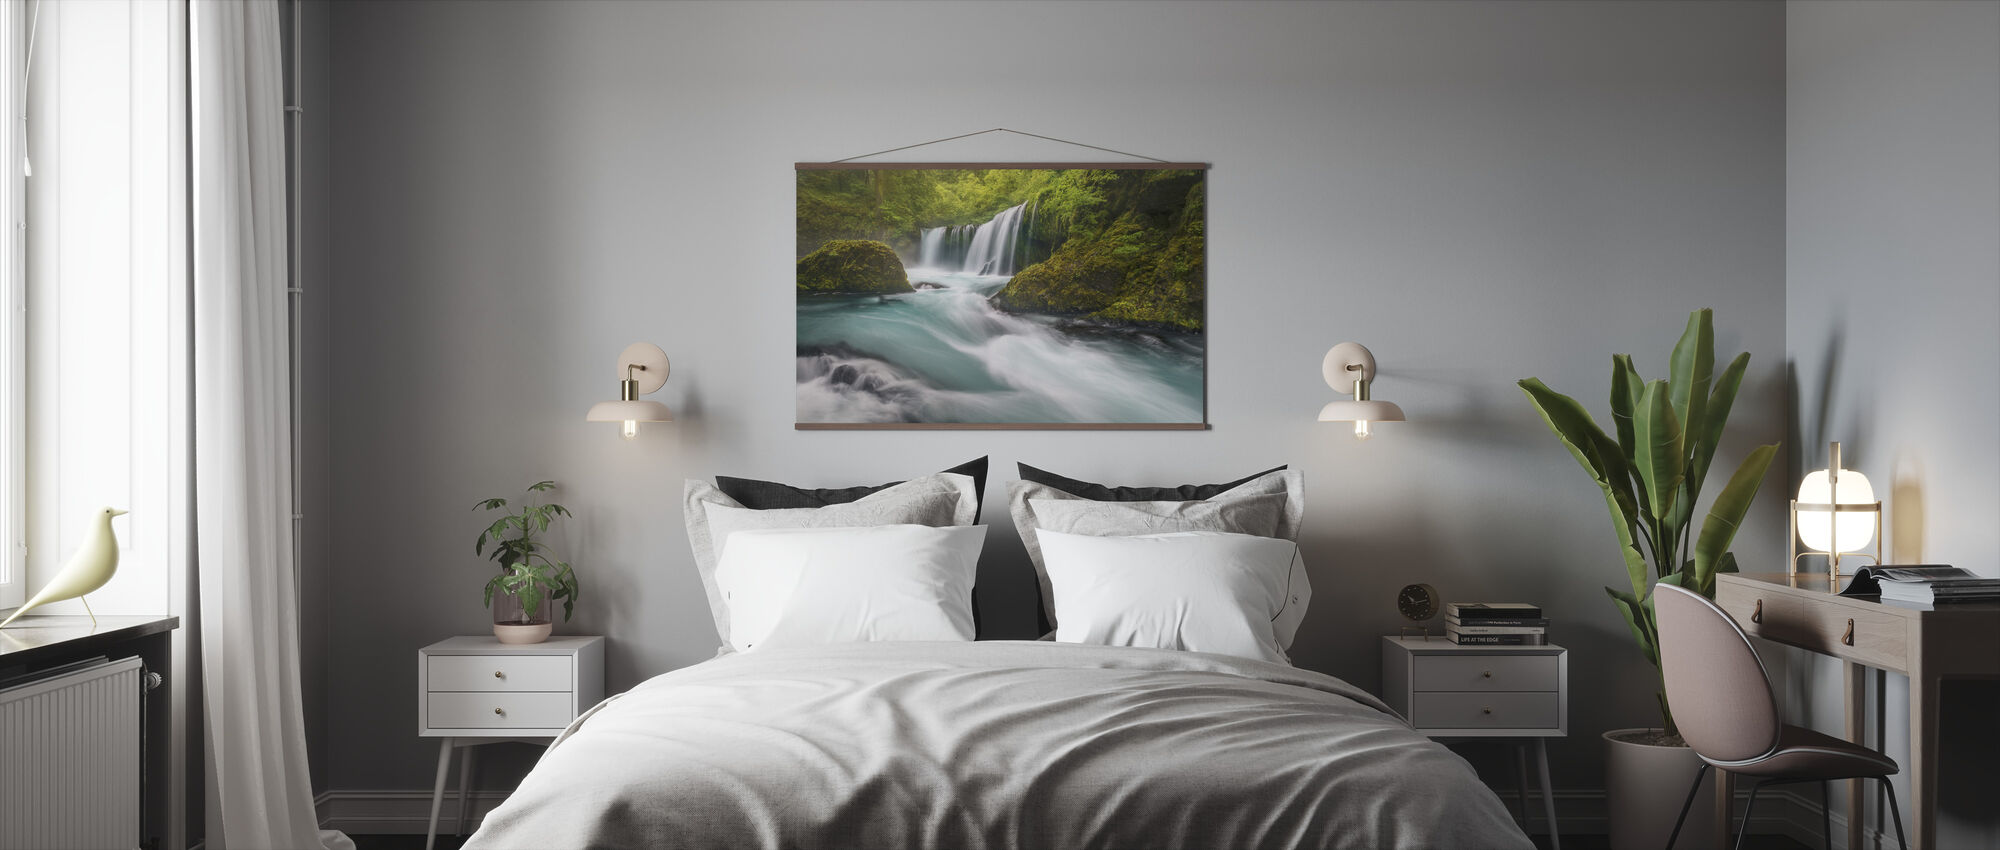 Spirit Falls - Poster - Bedroom